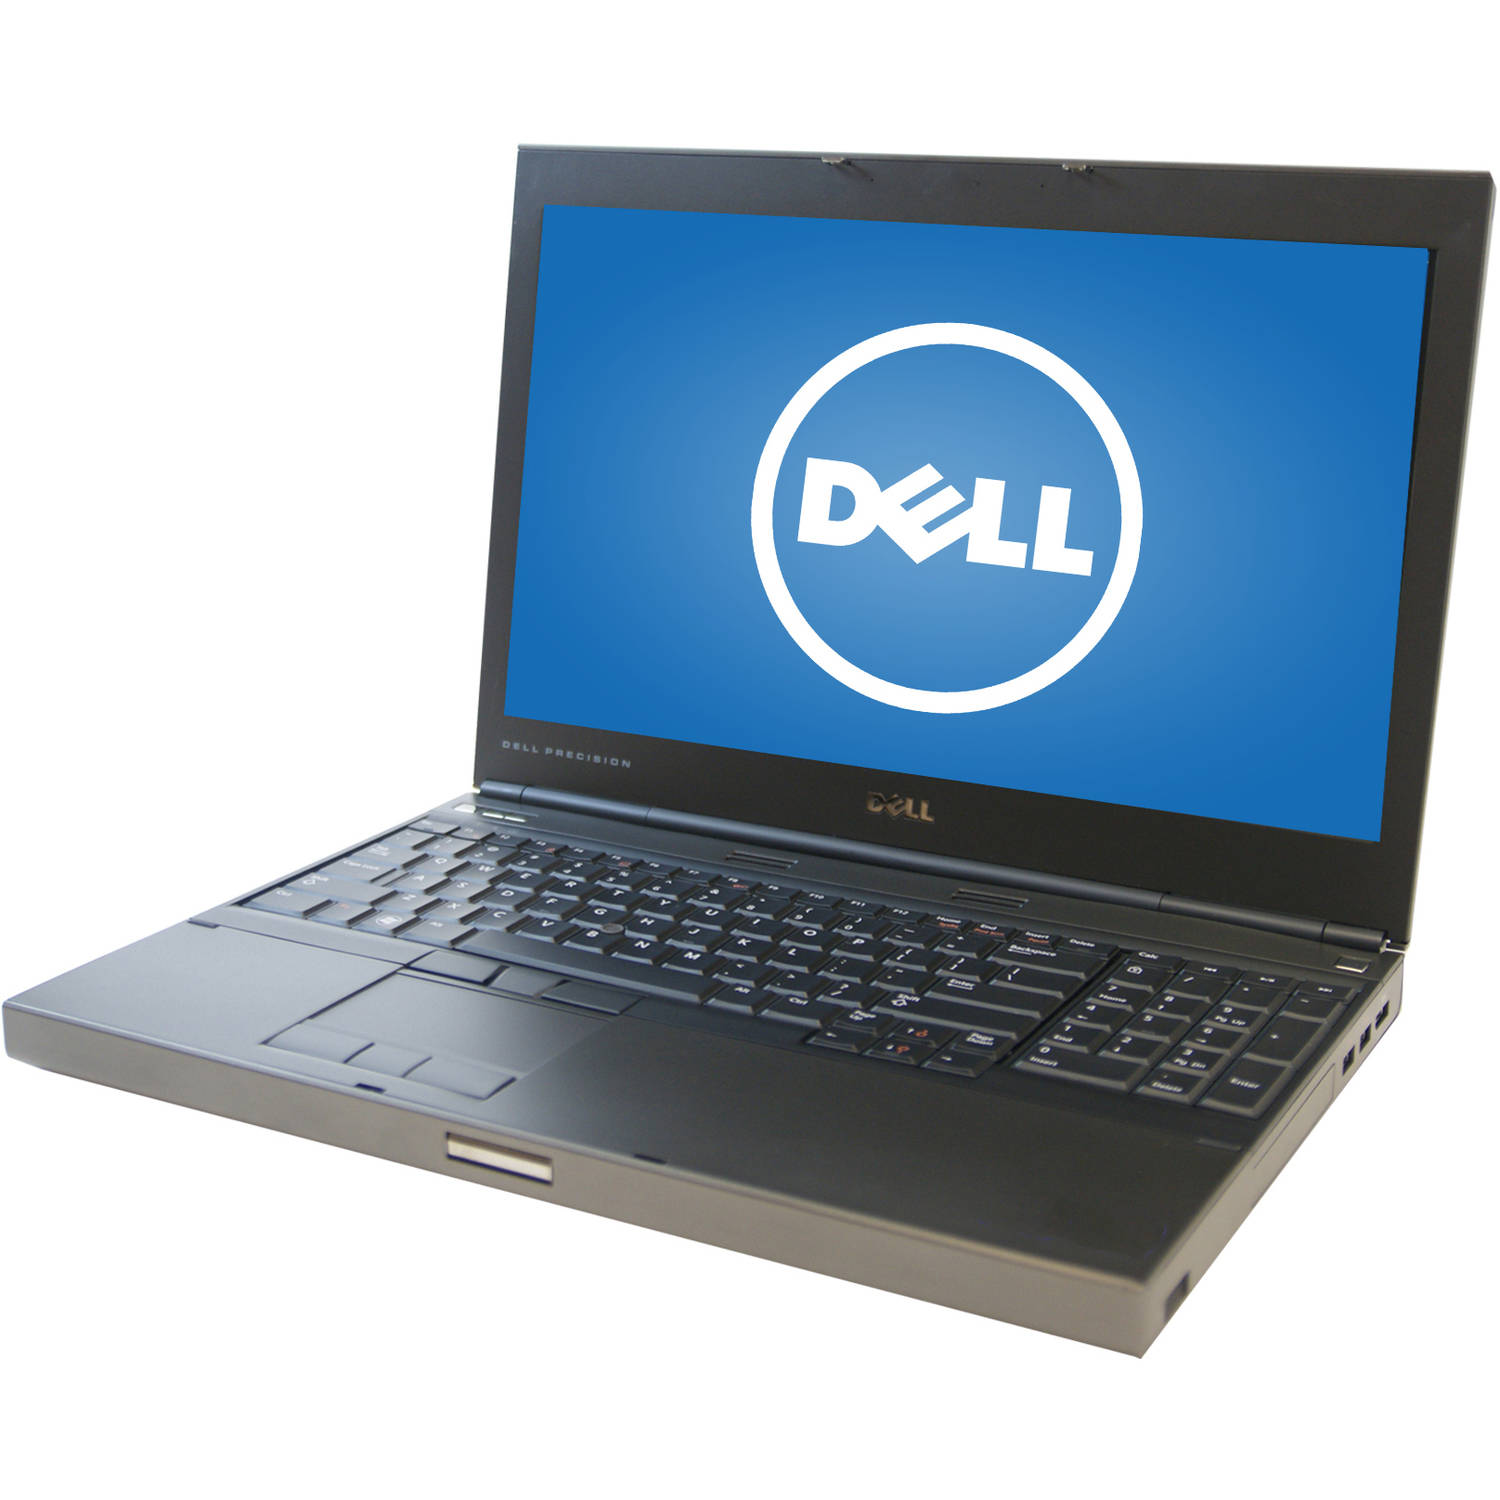 "Refurbished Dell 15.6"" M4600 Laptop PC with Intel Core i5-2410M Processor, 8GB Memory, 500GB Hard Drive and Windows 10 Pro"